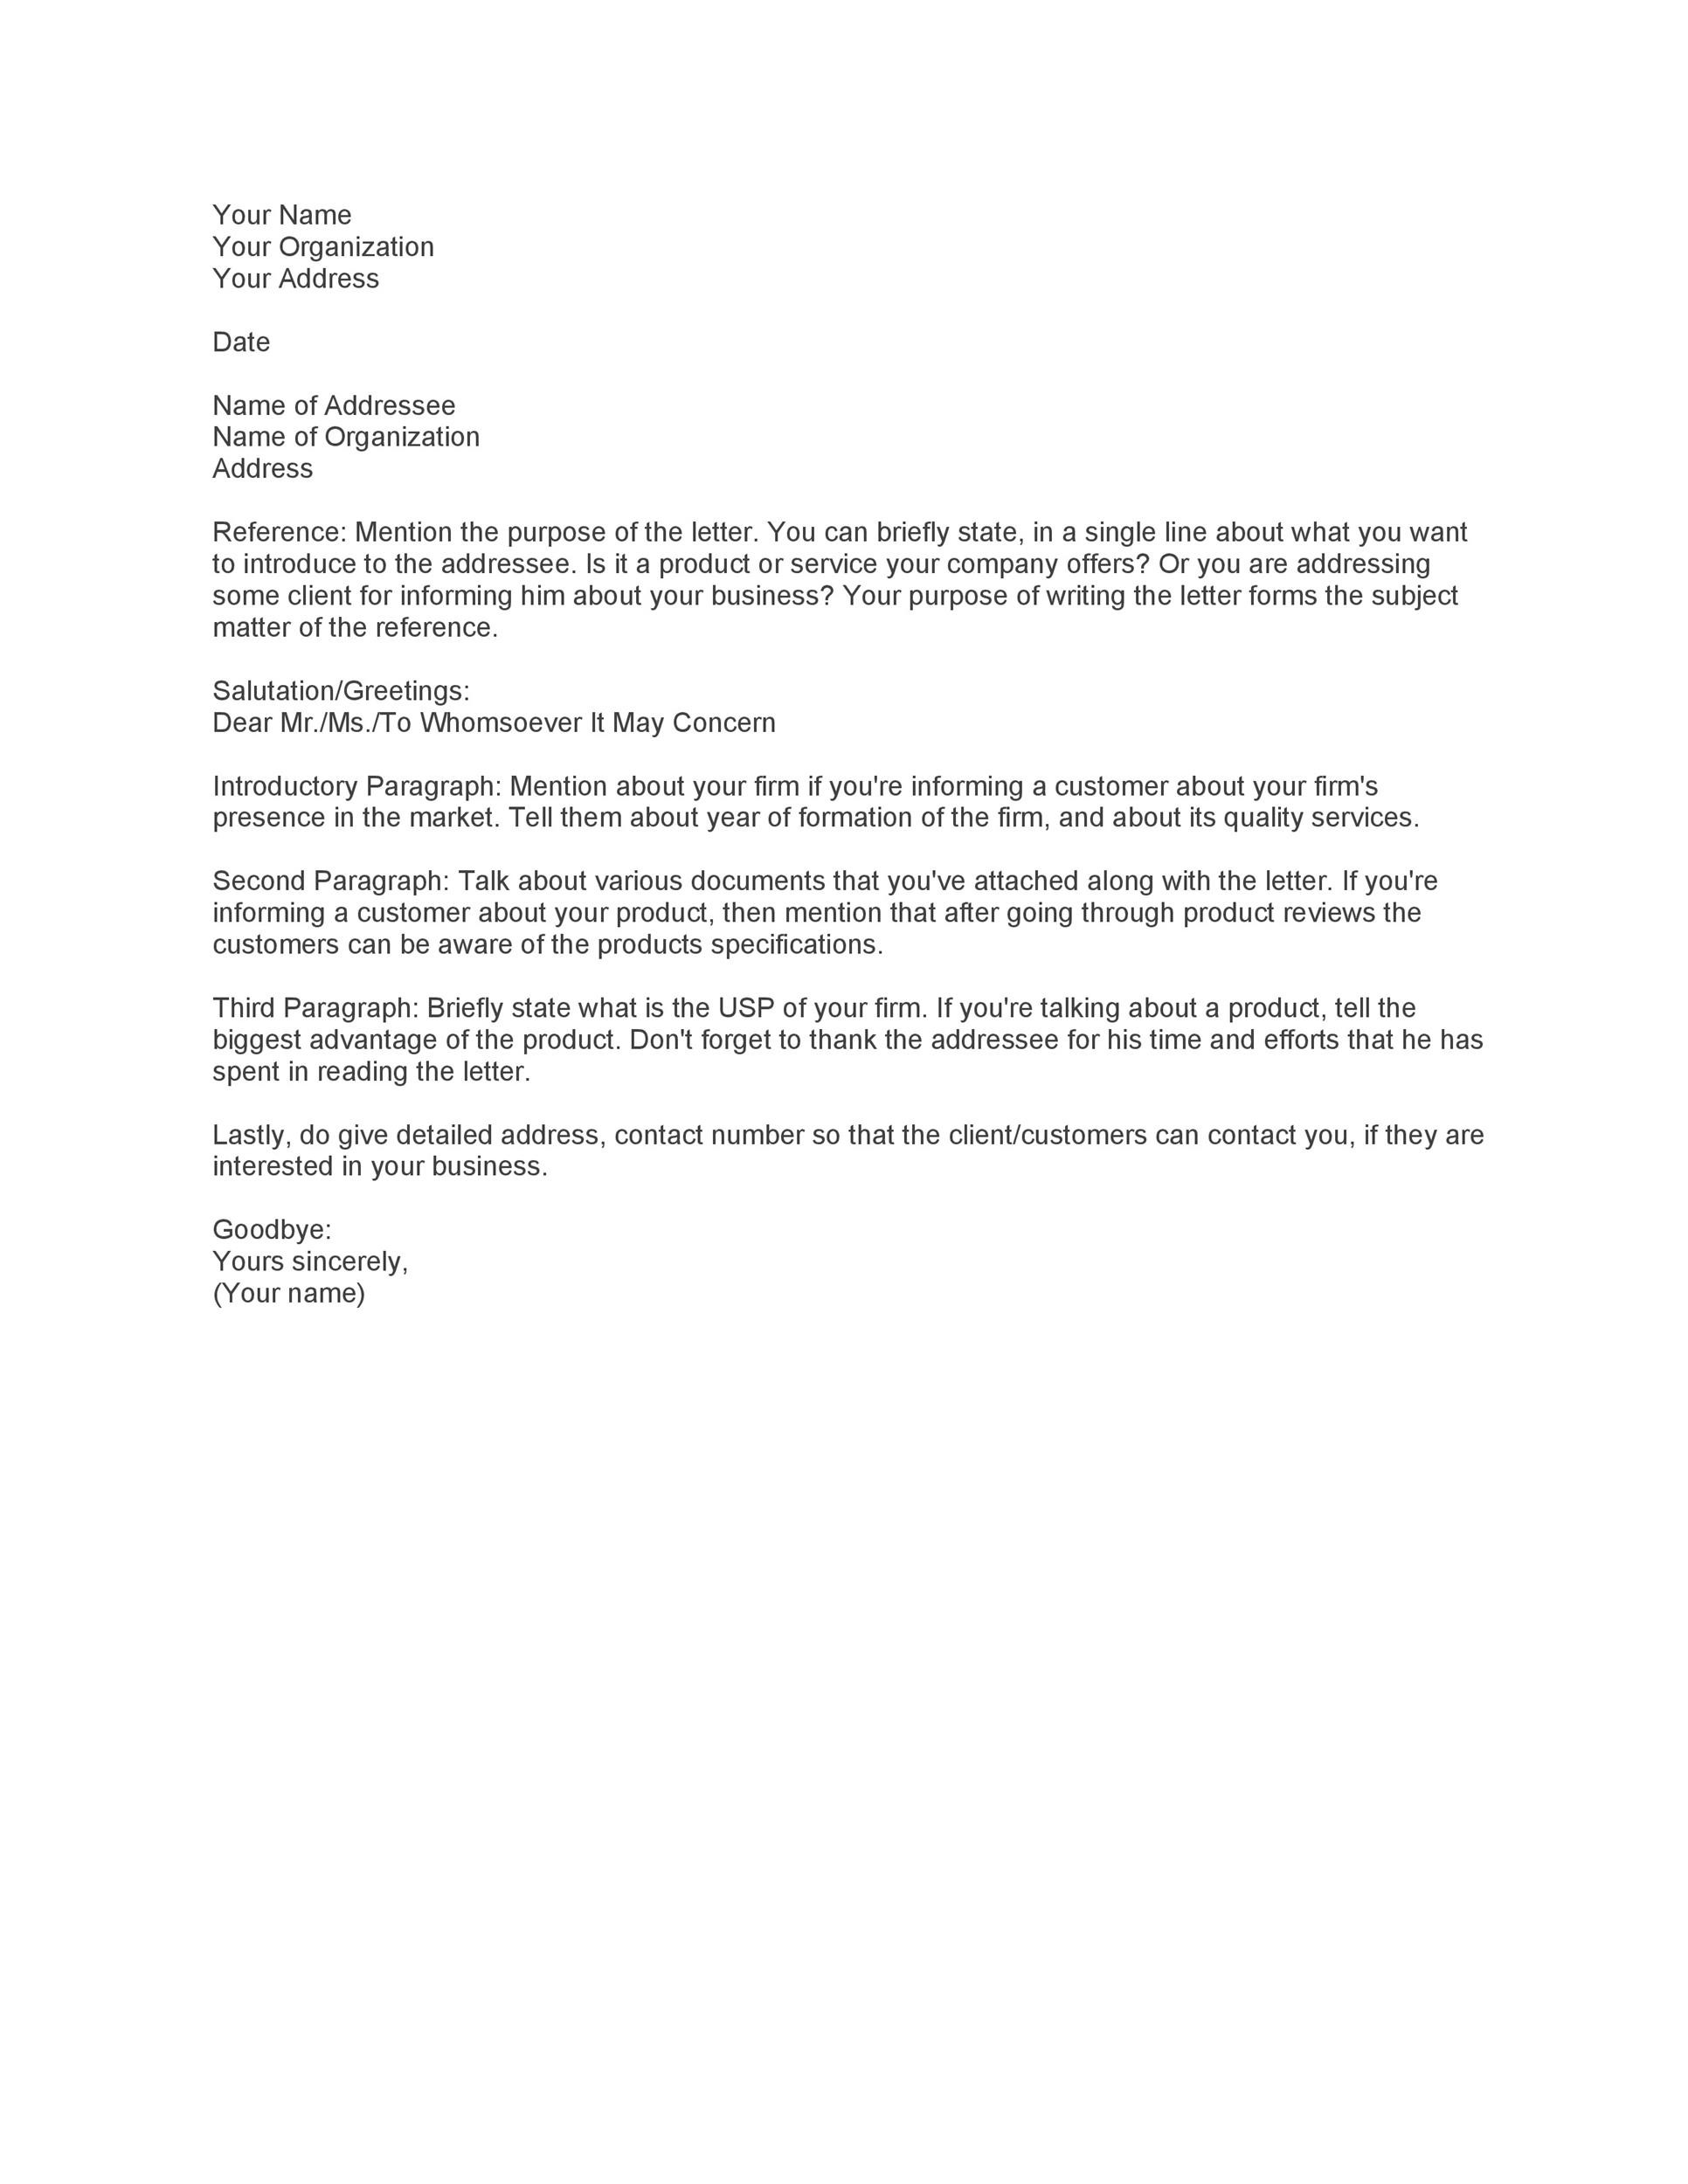 Sample Introductory Letter To Prospective Clients from templatelab.com